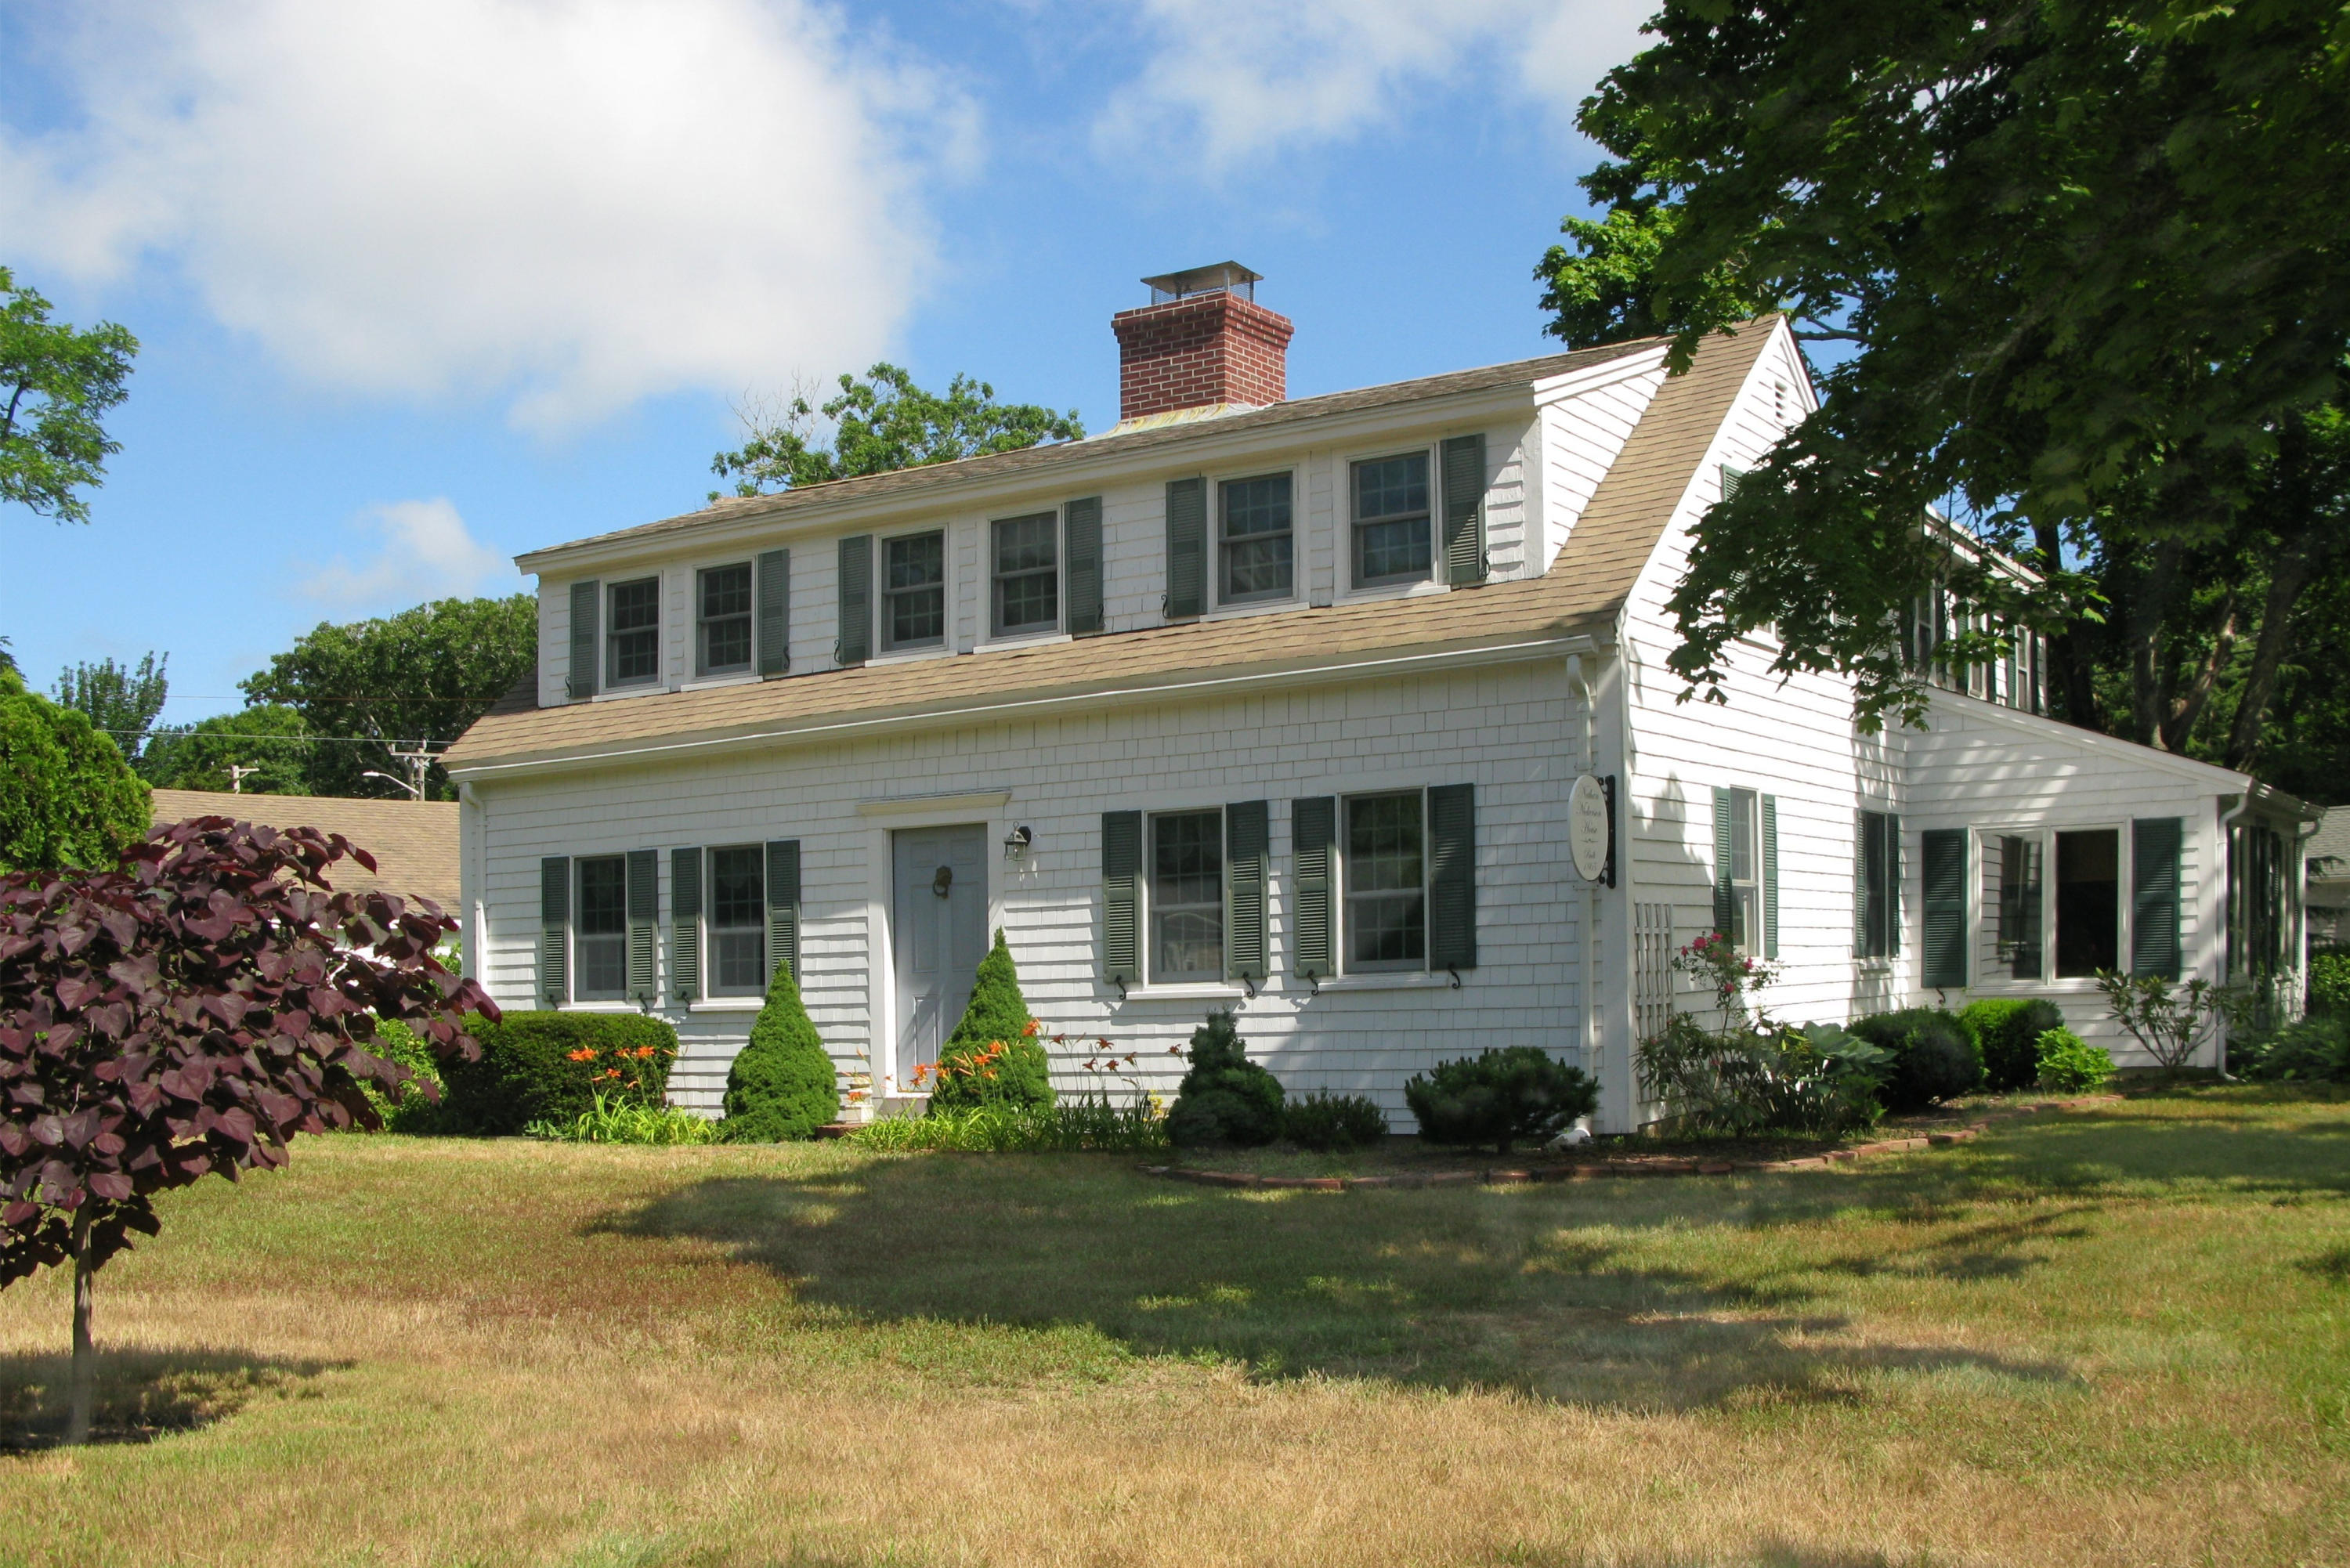 241 Pleasant Bay Road, East Harwich MA, 02645 details